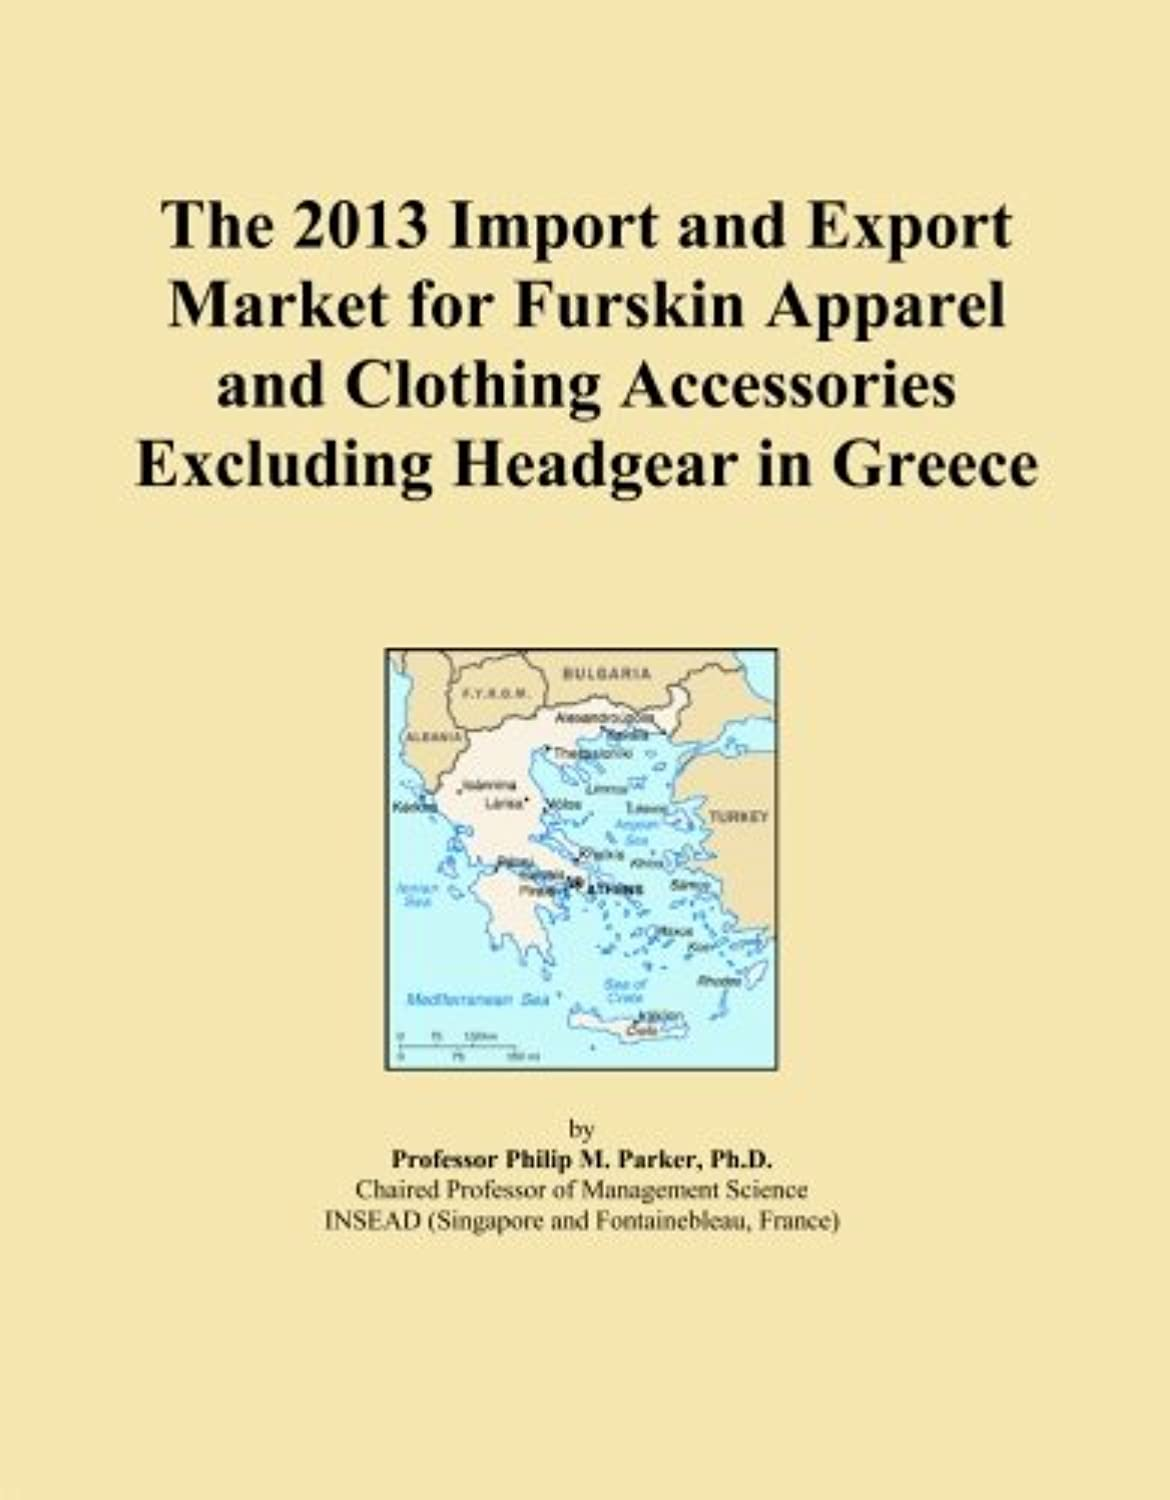 The 2013 Import and Export Market for Furskin Apparel and Clothing Accessories Excluding Headgear in Greece